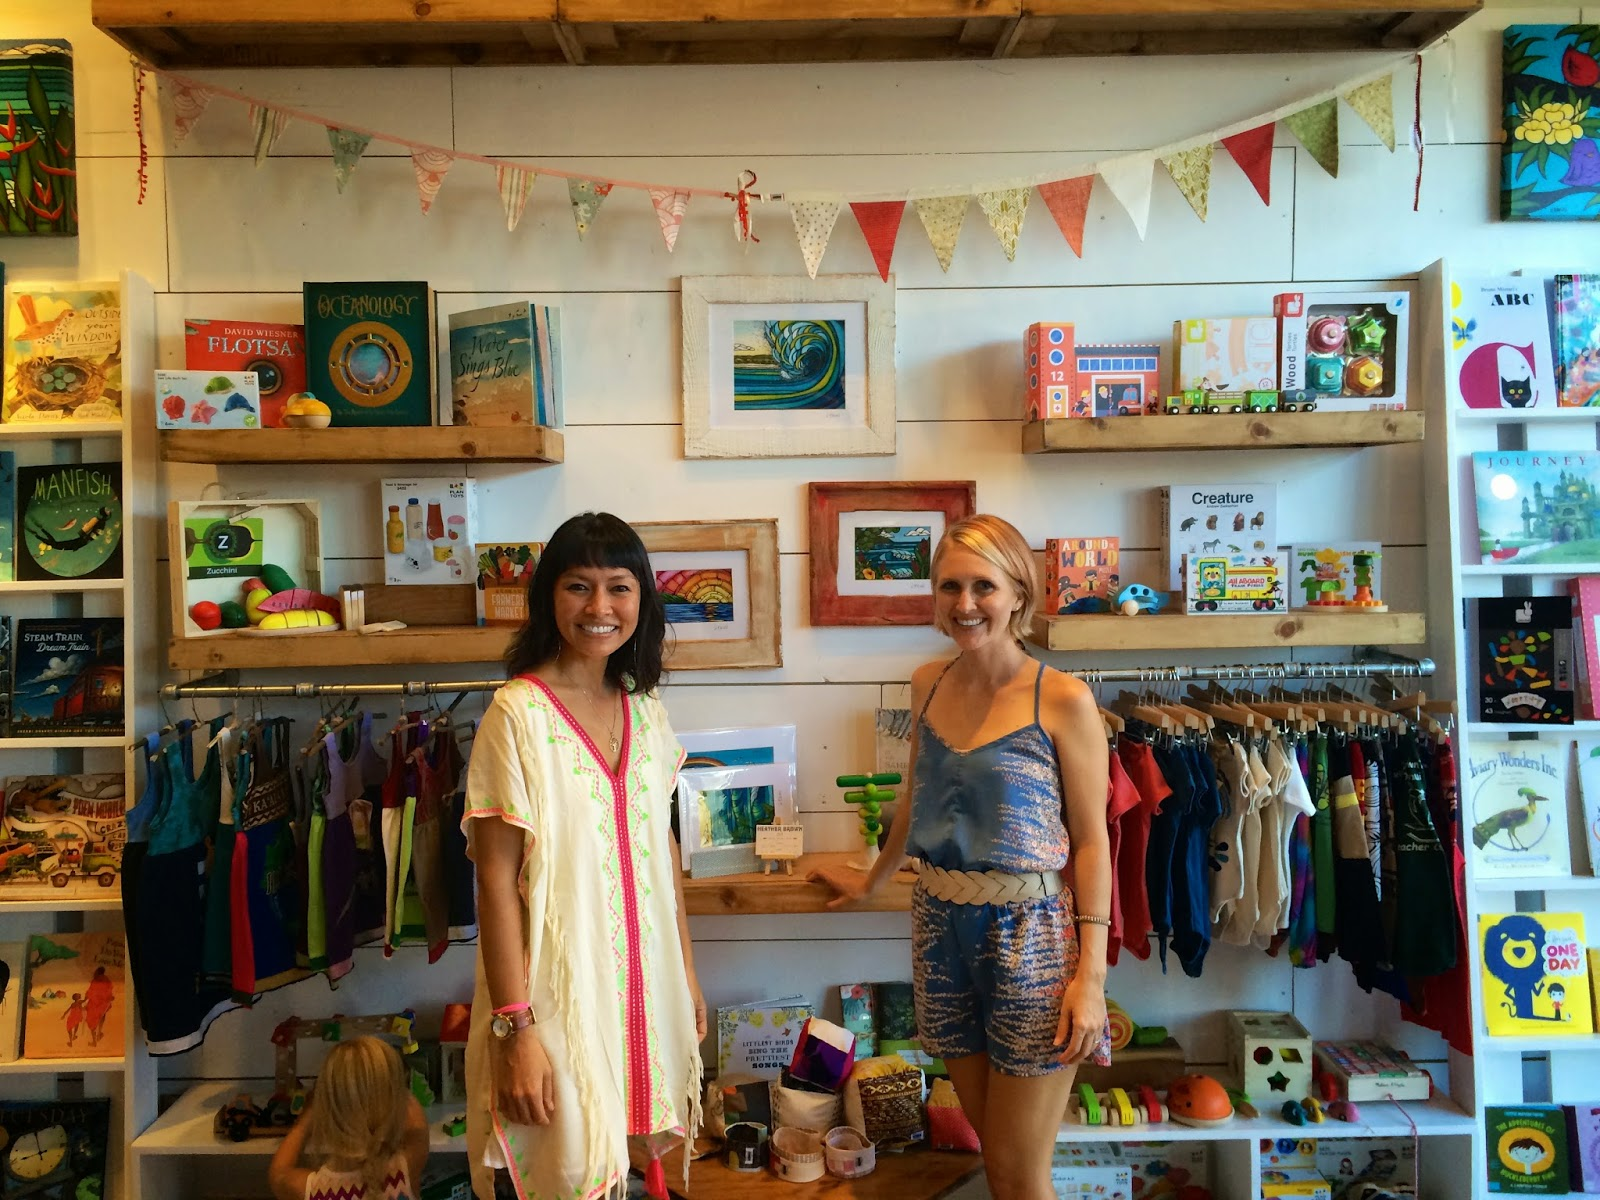 Maui Children's Bookstore Wailuku Kids Books Ivy and Company Where to Shop Amanda Robson & Rebecca Owen